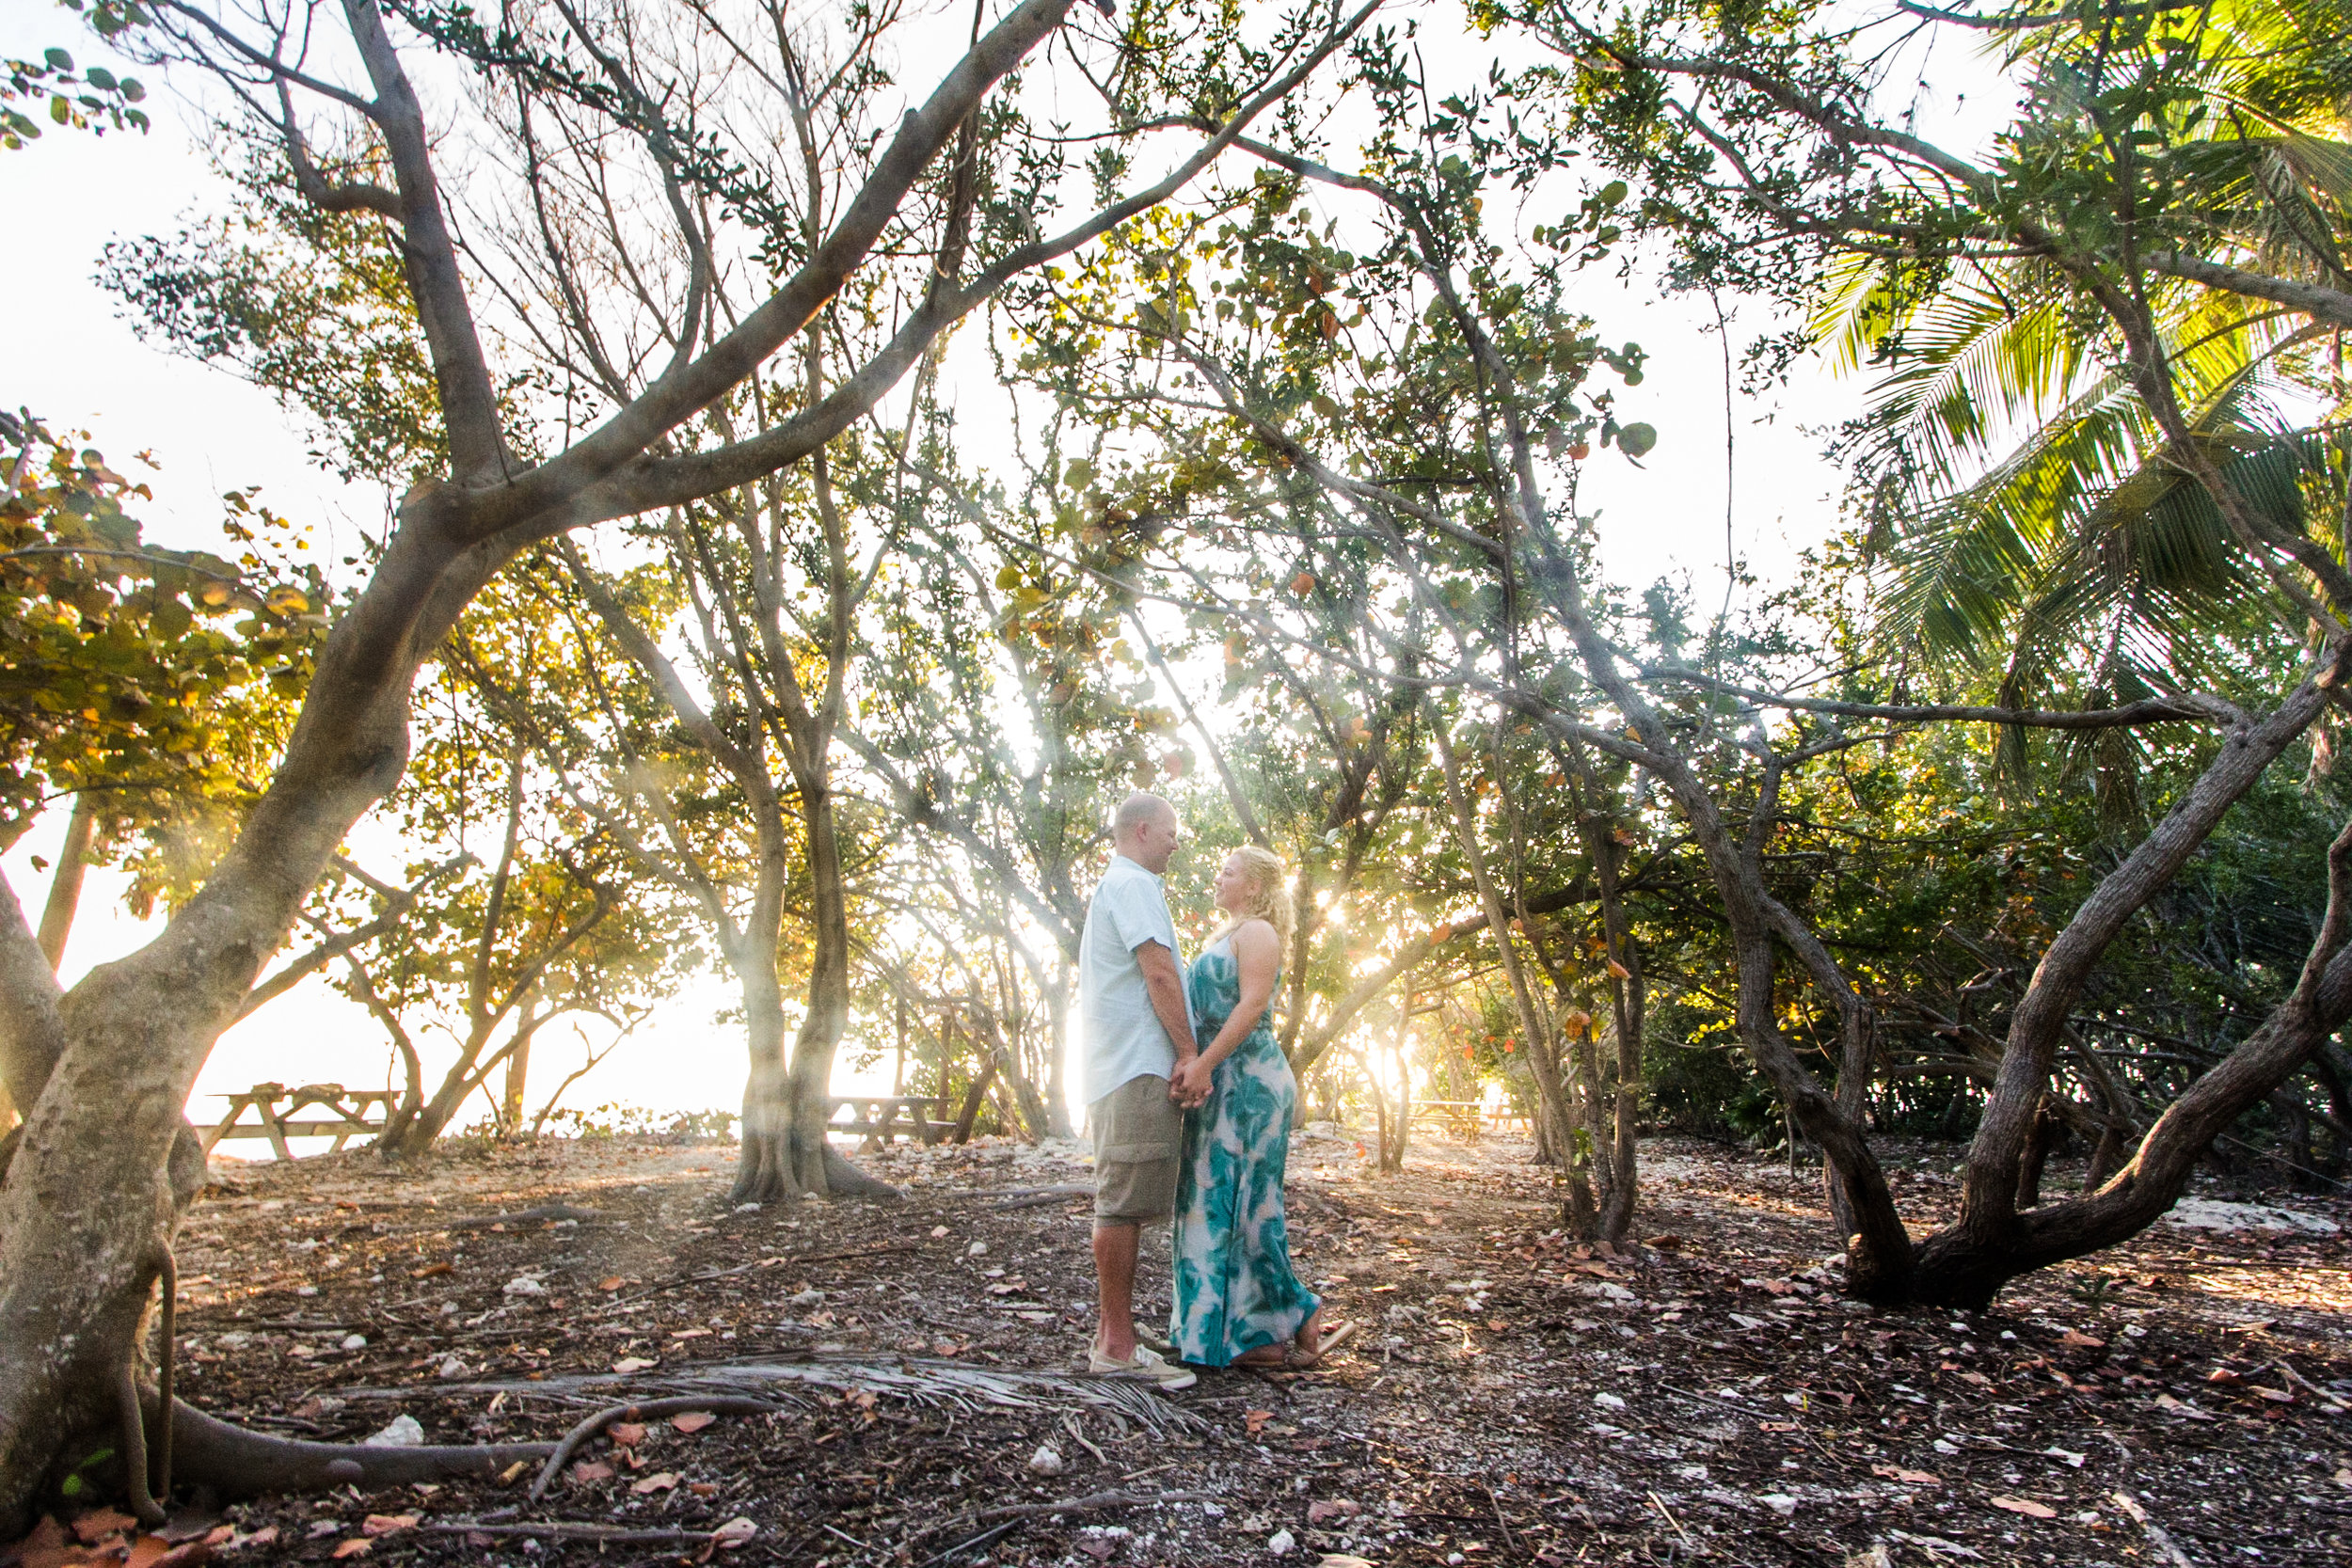 Couple enjoying the view under the trees during a recent engagement photo shoot at Fort Zachary Taylor state park in Key West.